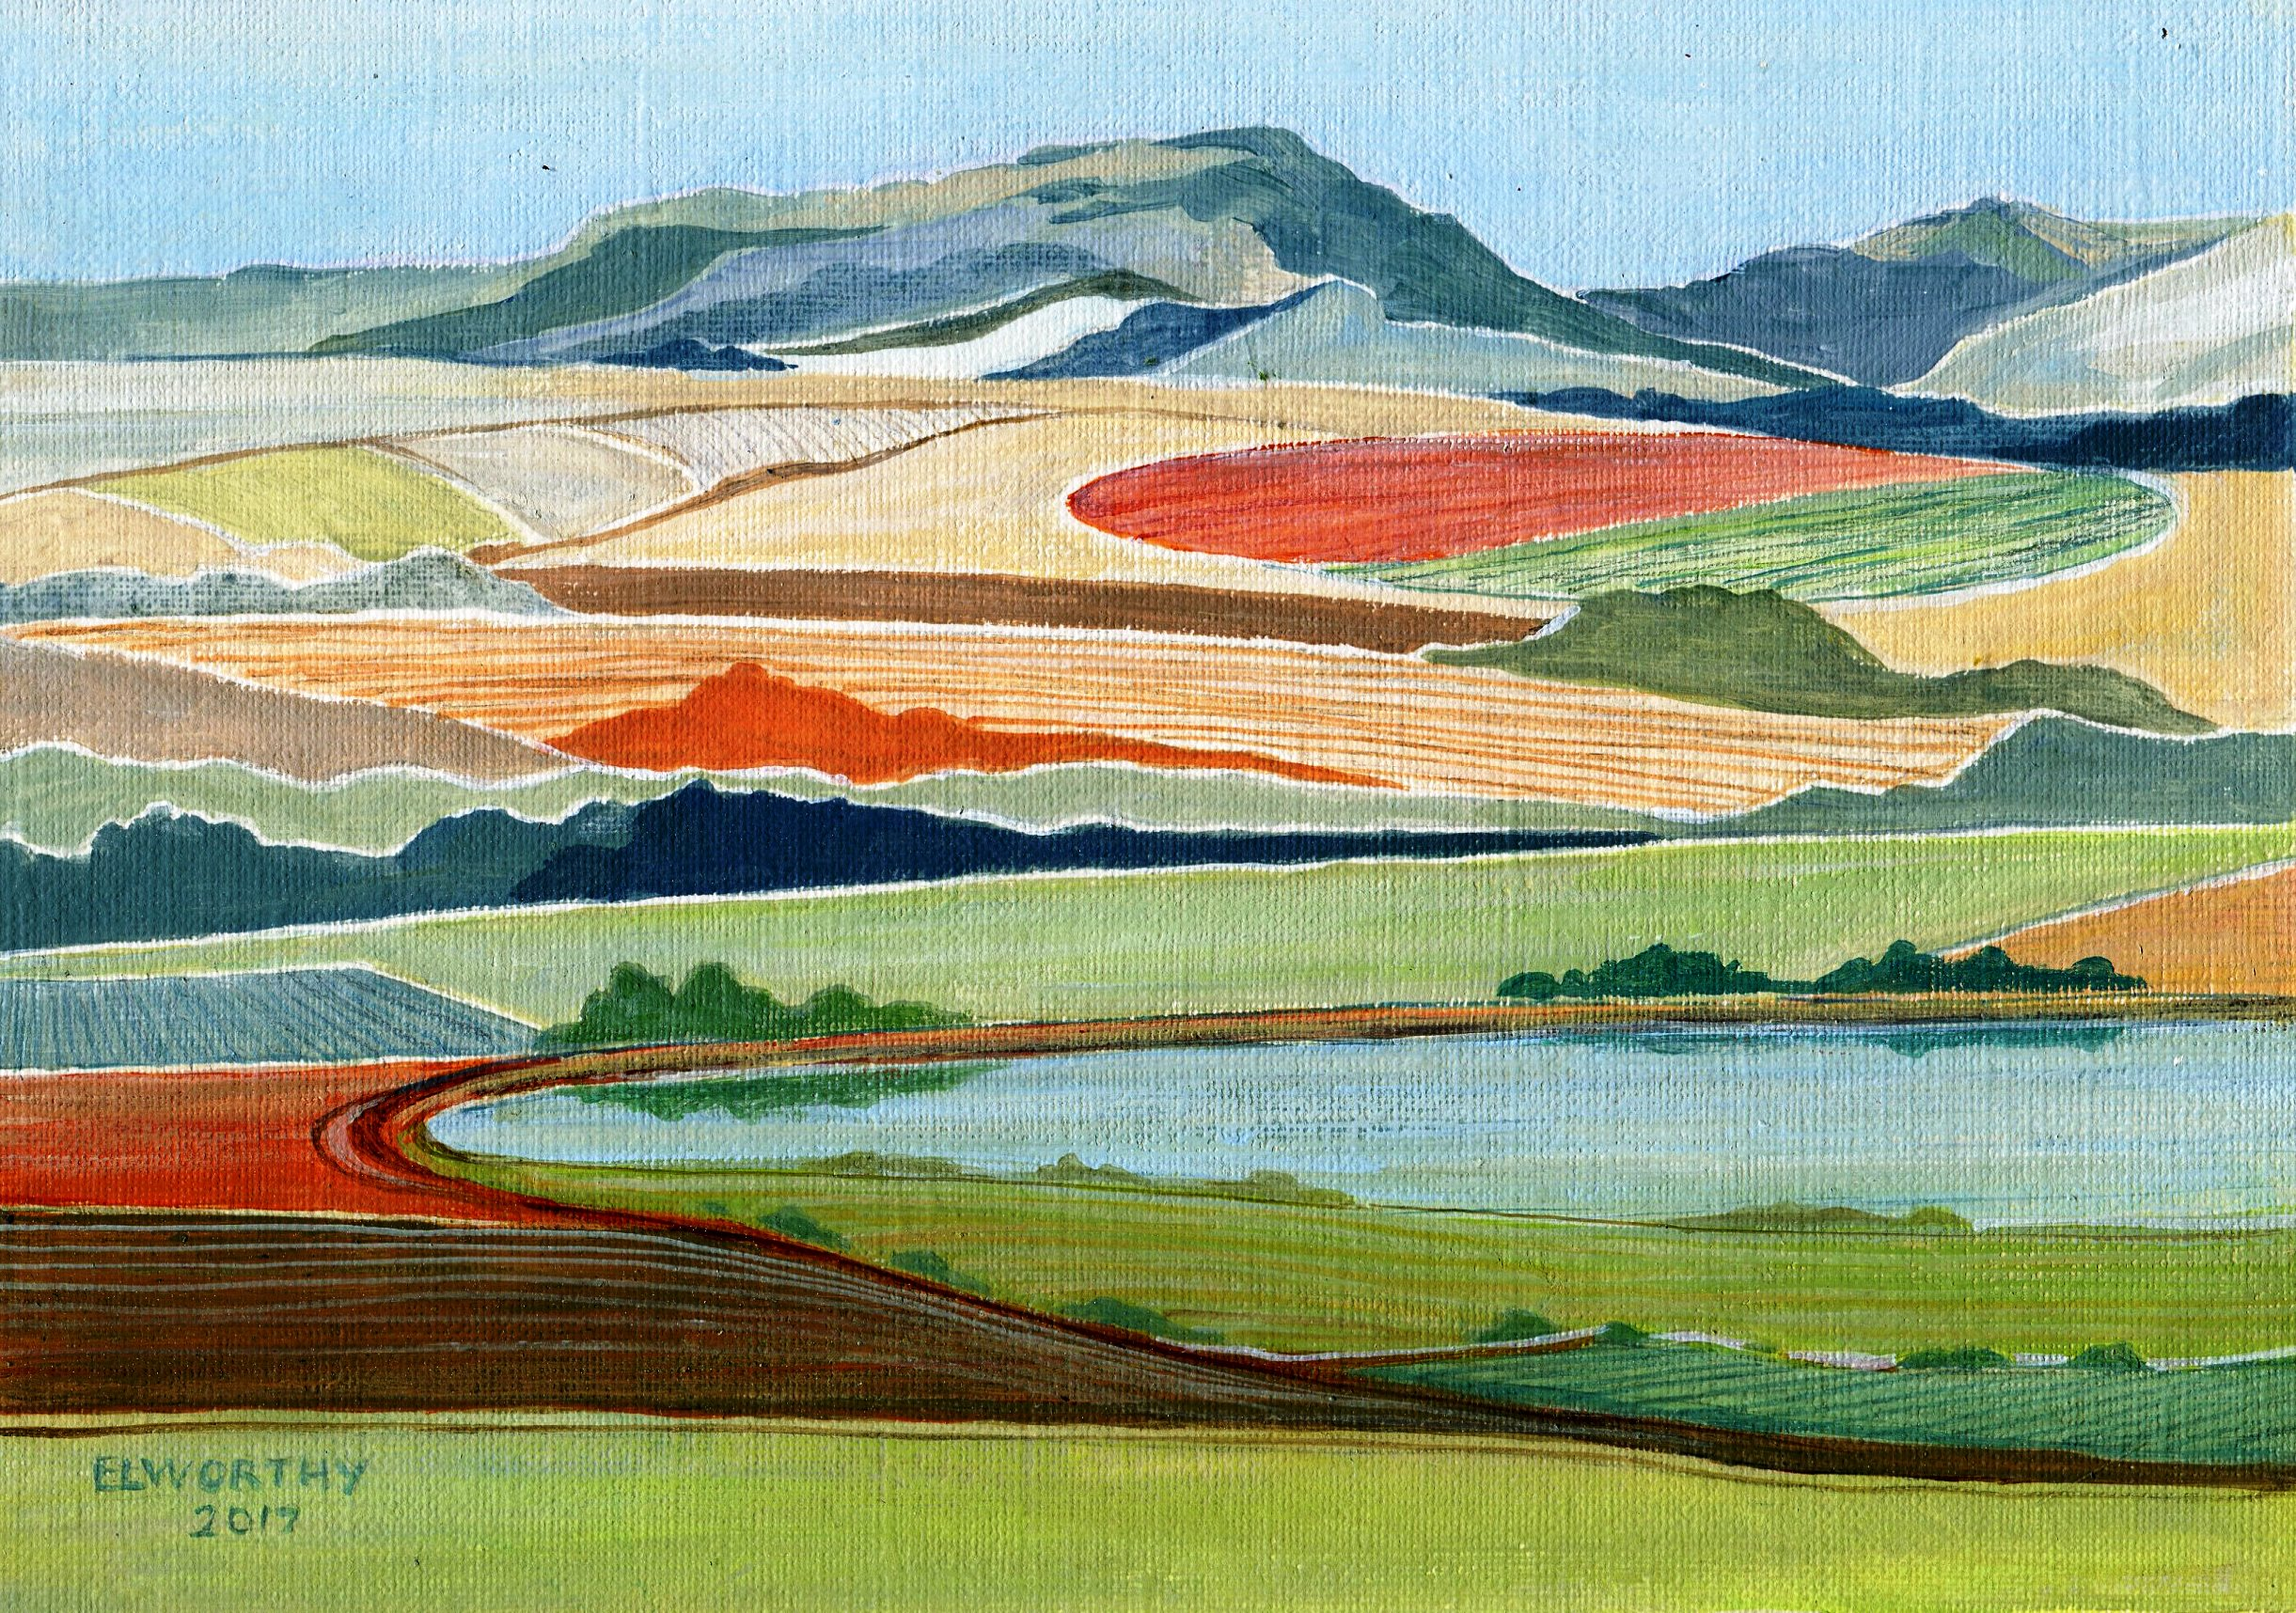 93A JEAN ELWORTHY, TUGELA LANDS, ACRYLIC ON CANVAS CARD